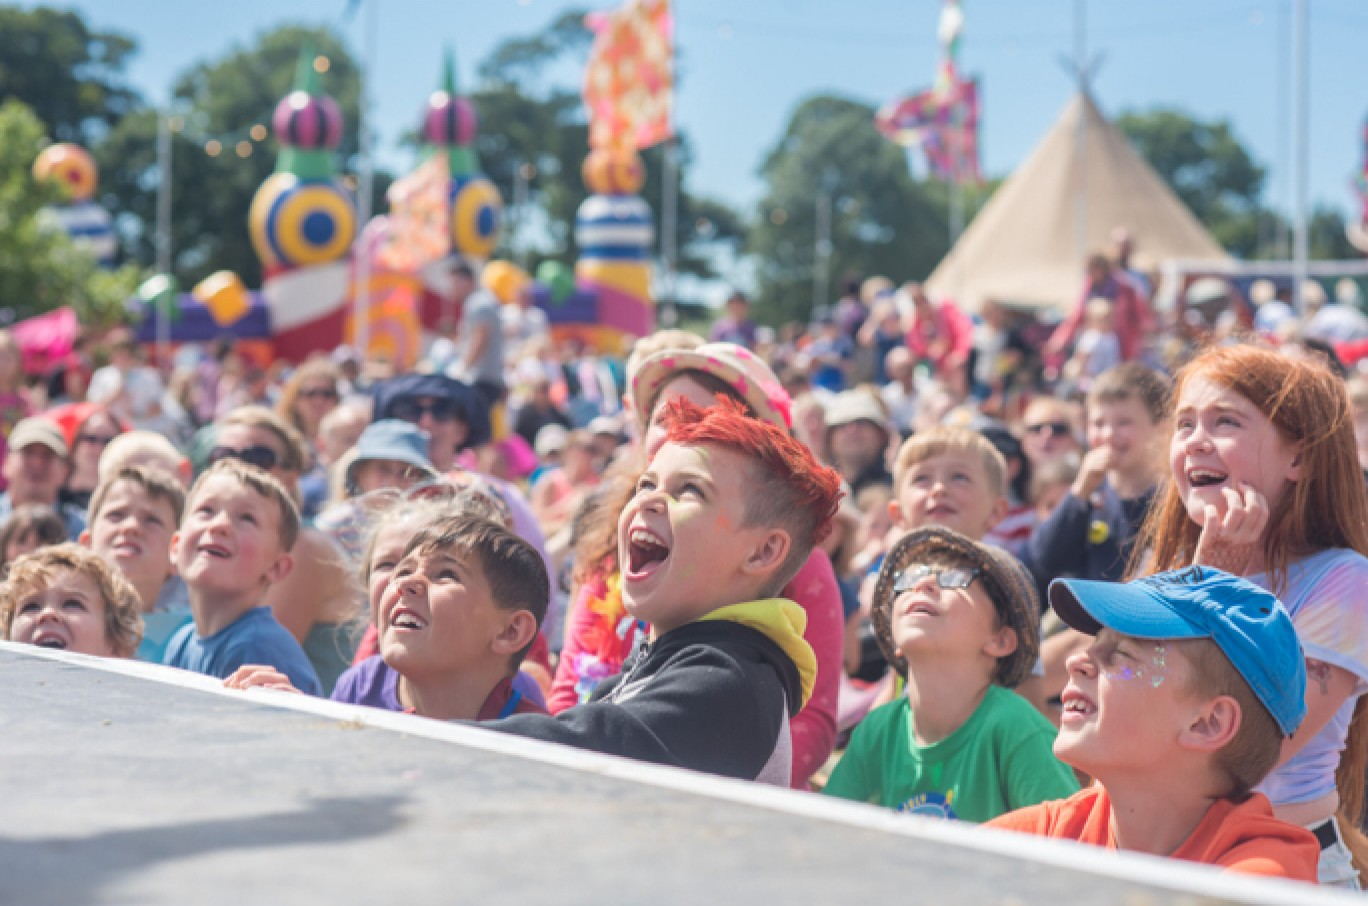 6_123-camp-bestival-2017-kids-field-cl-dsc_28071501585097